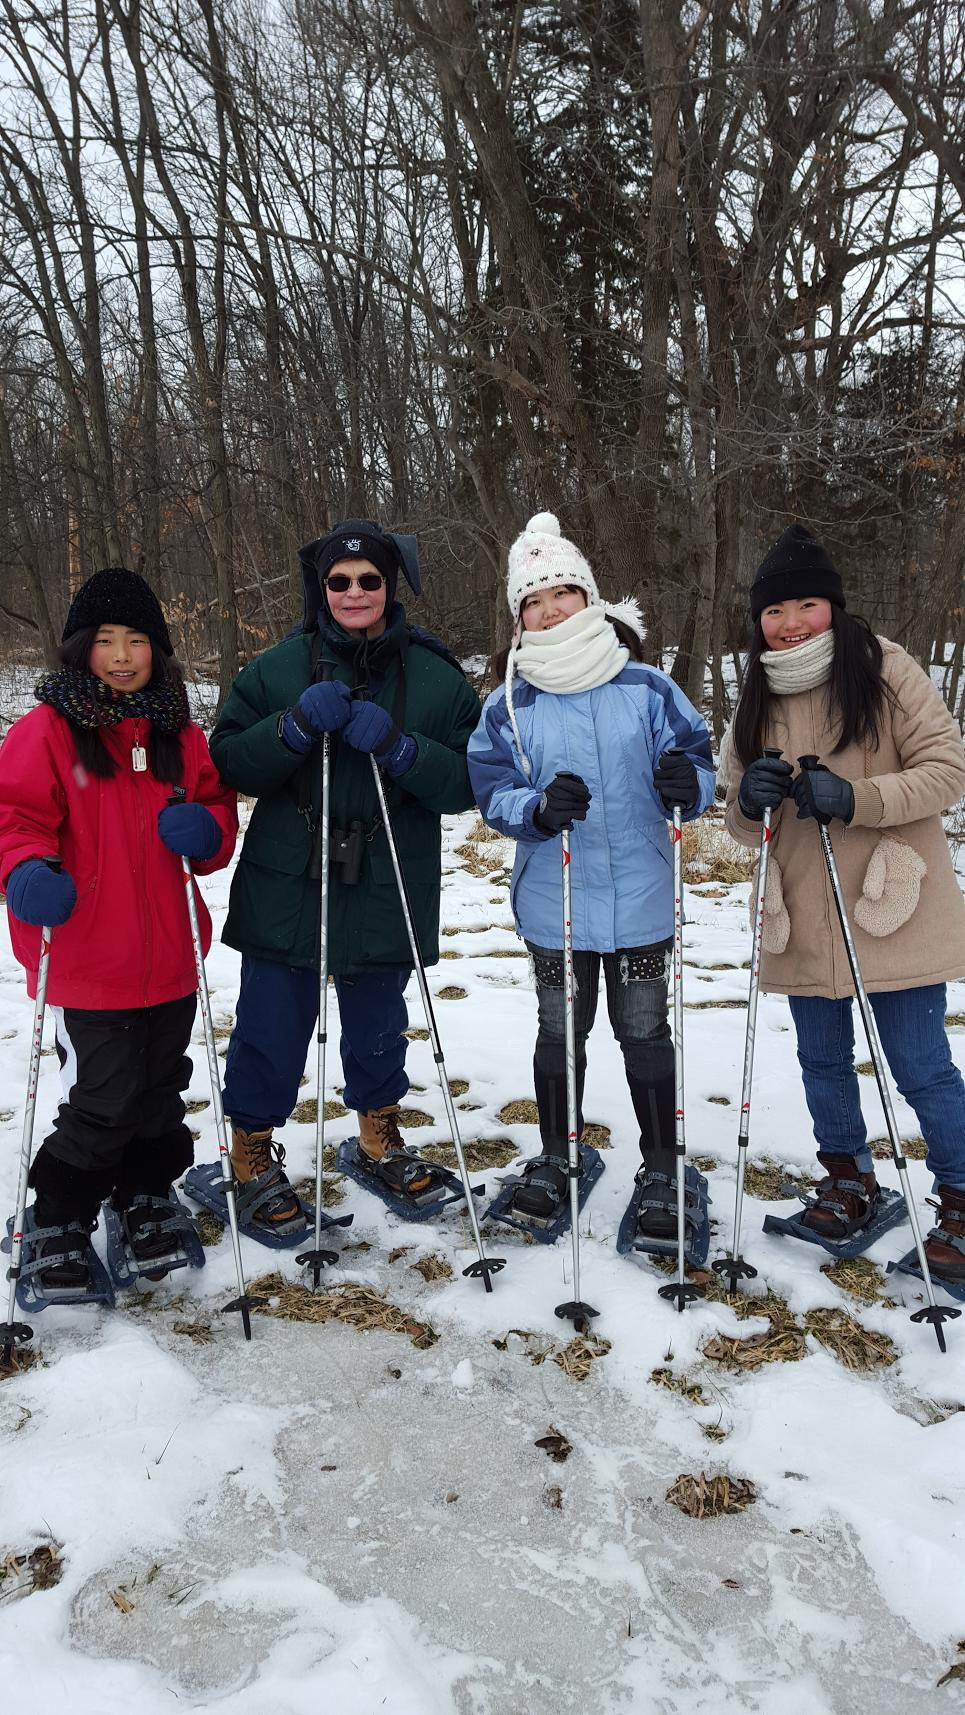 Group 2 Snow Shoeing